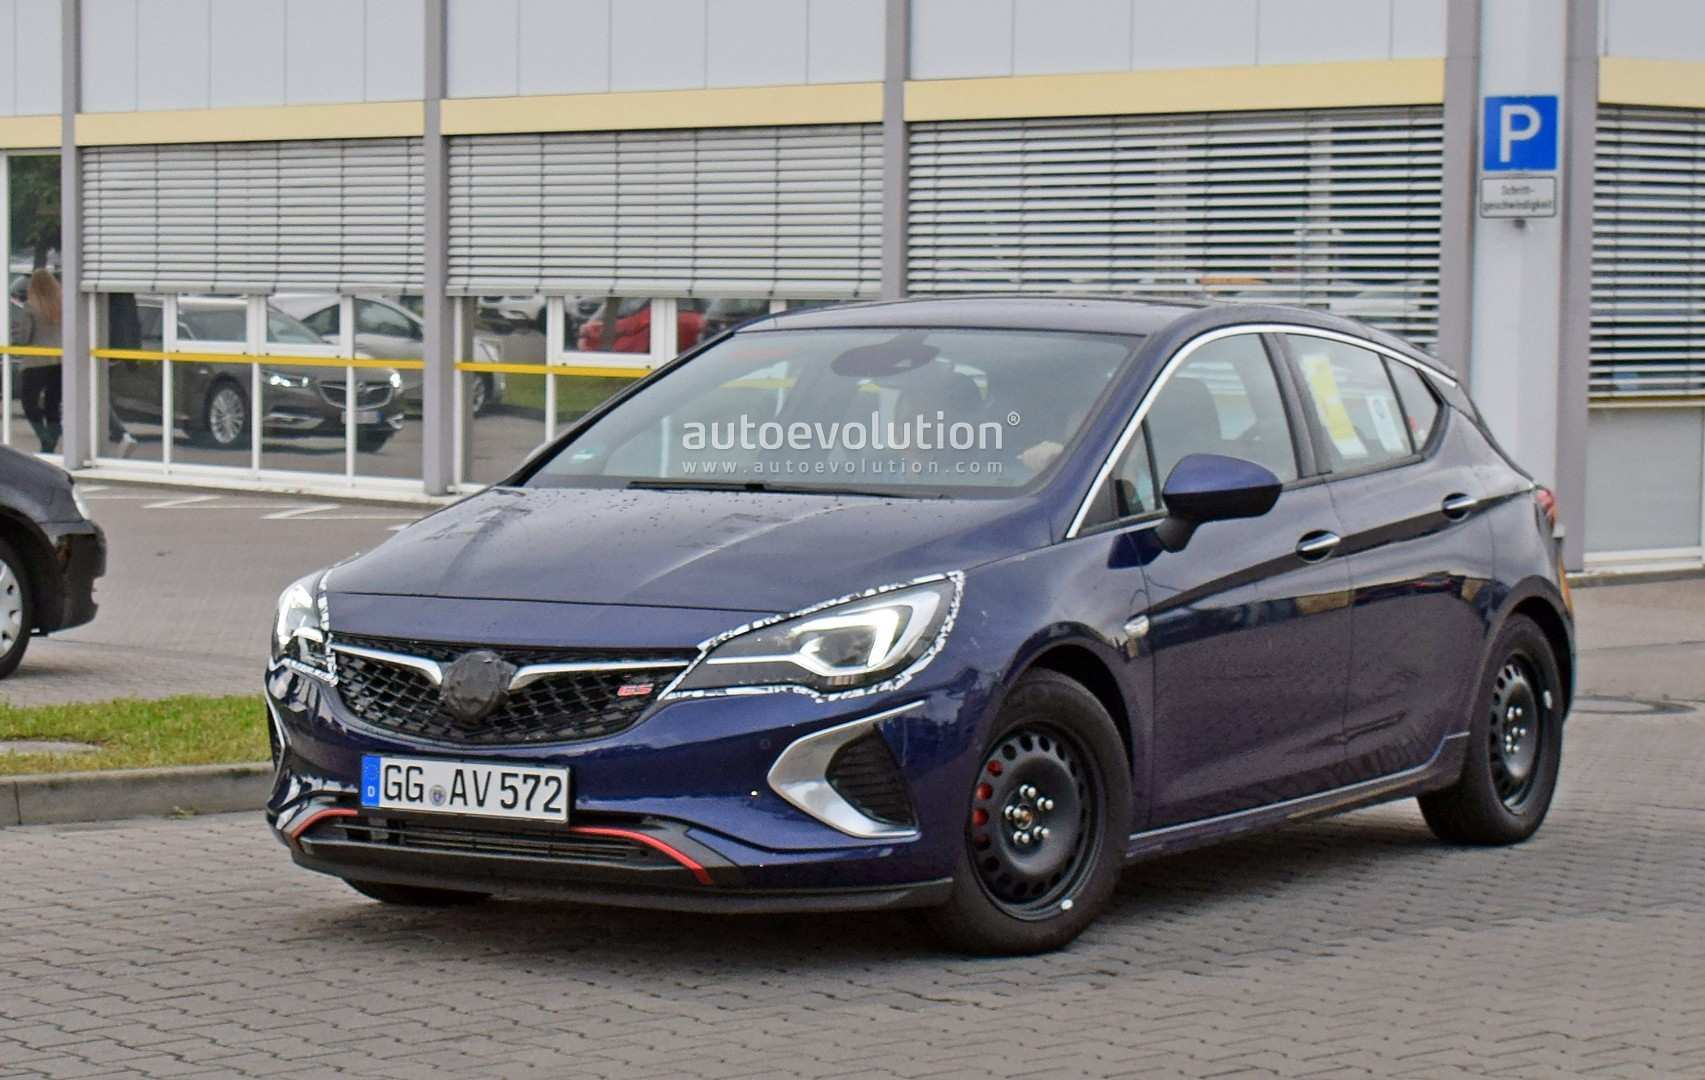 55 All New Opel Gtc 2019 Exterior by Opel Gtc 2019